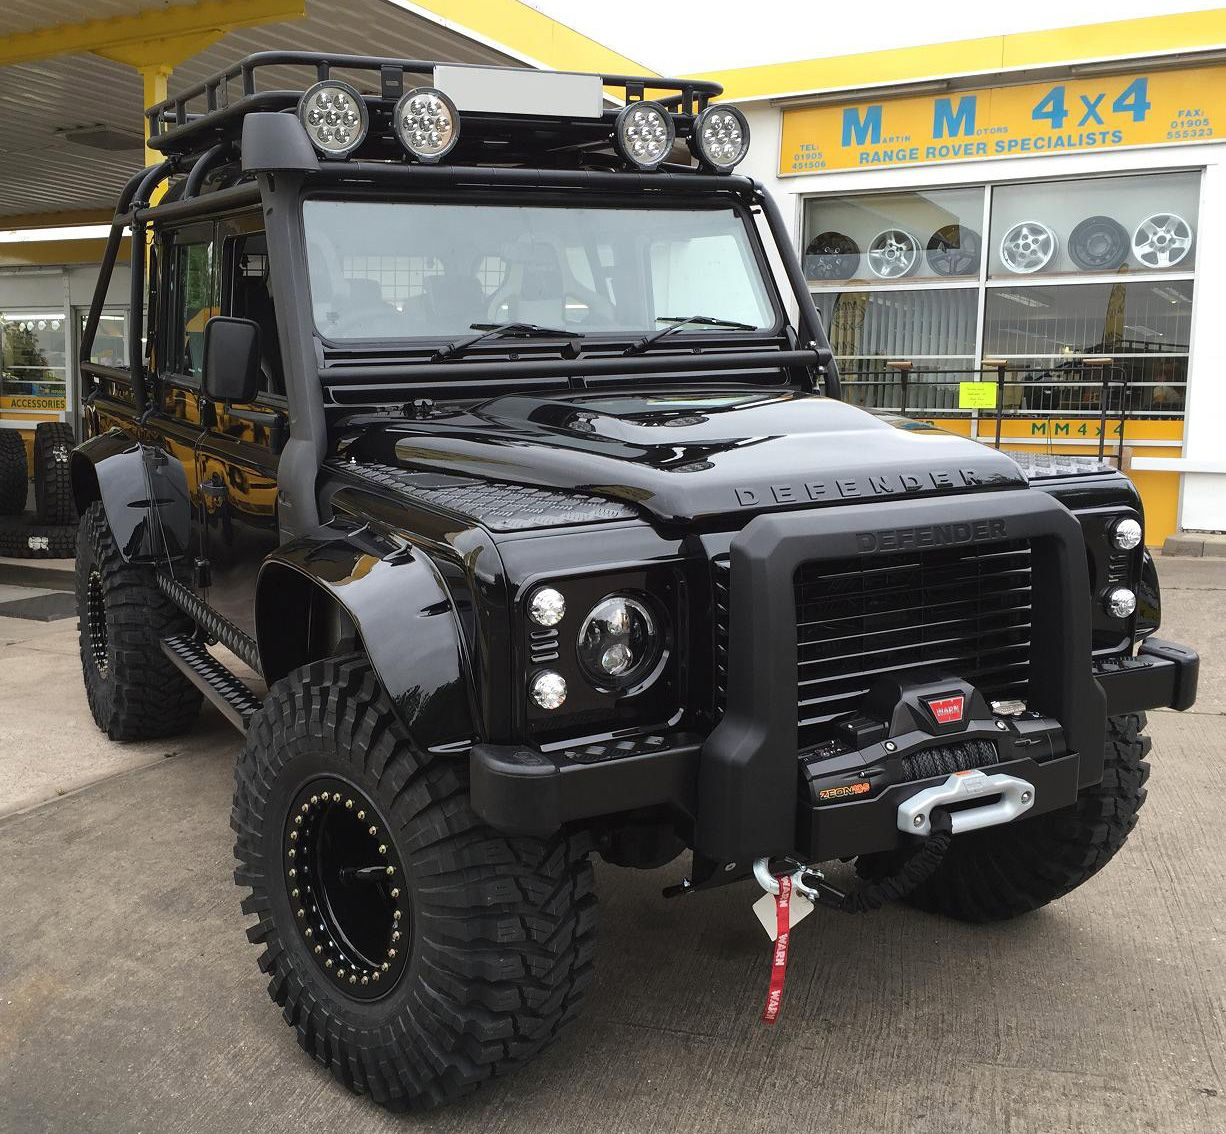 Parts, Accessories & Offroad Equipment